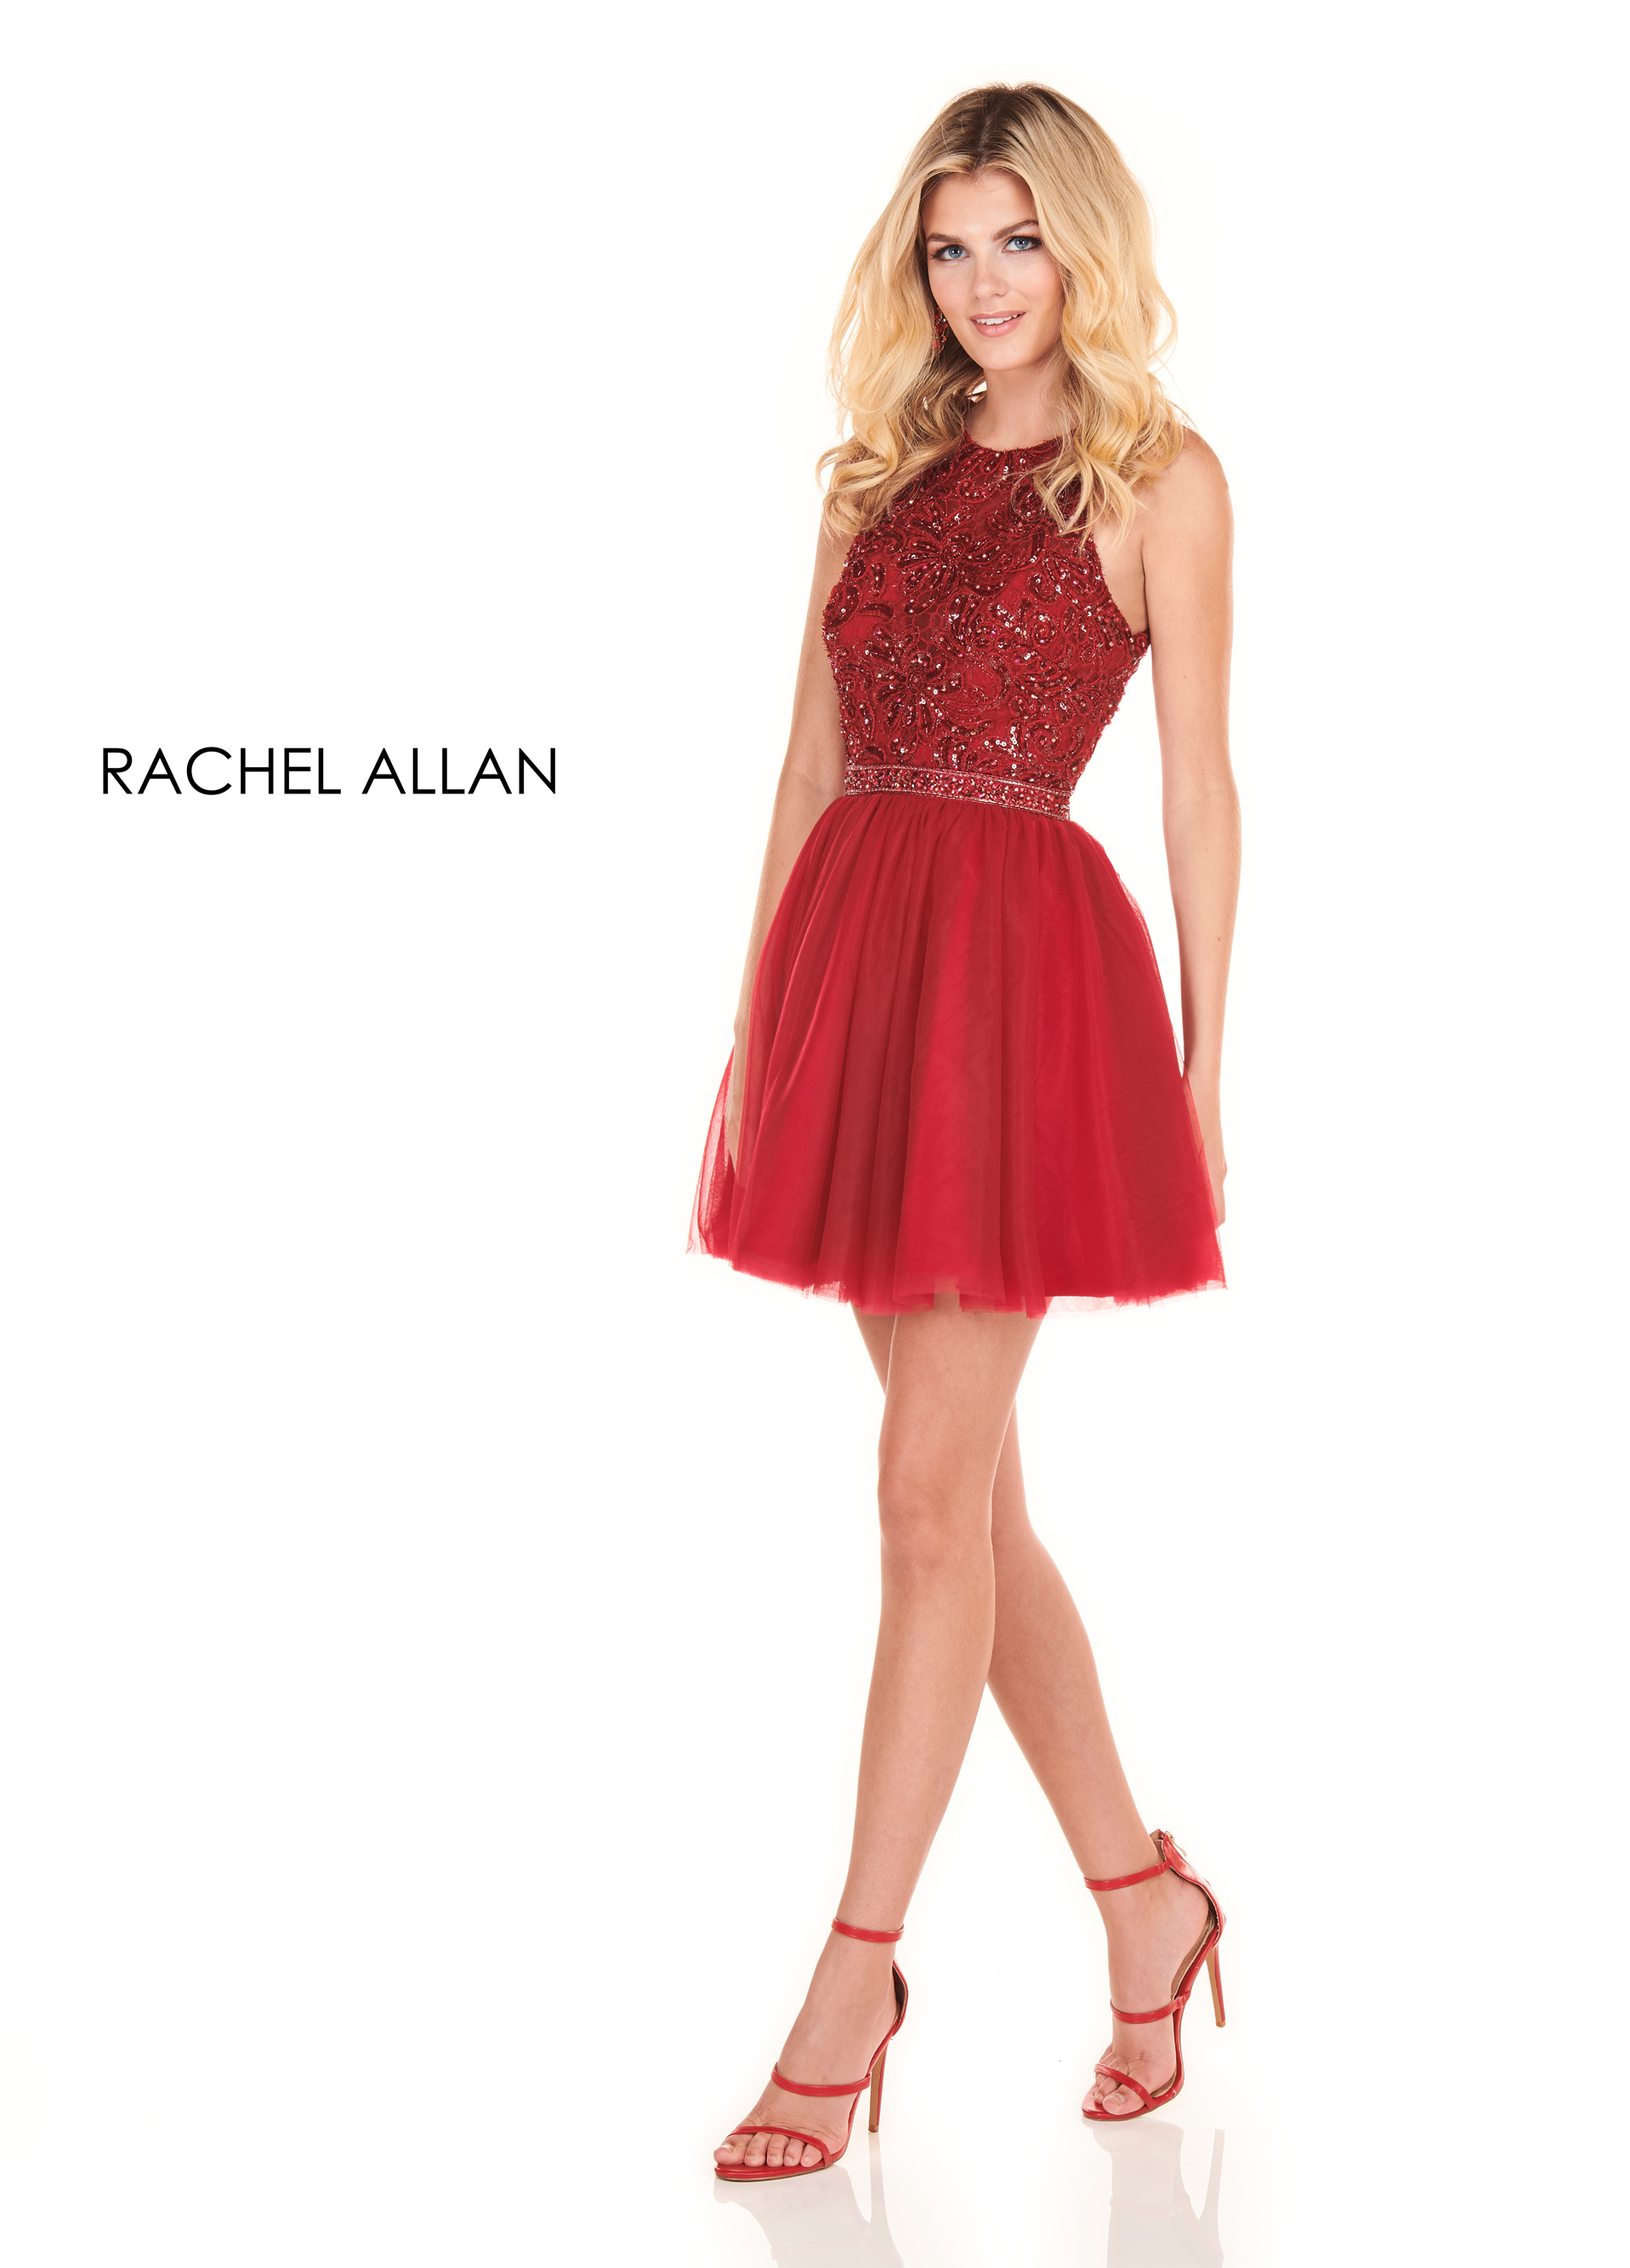 Halter A-Line Homecoming Dresses in Red Color